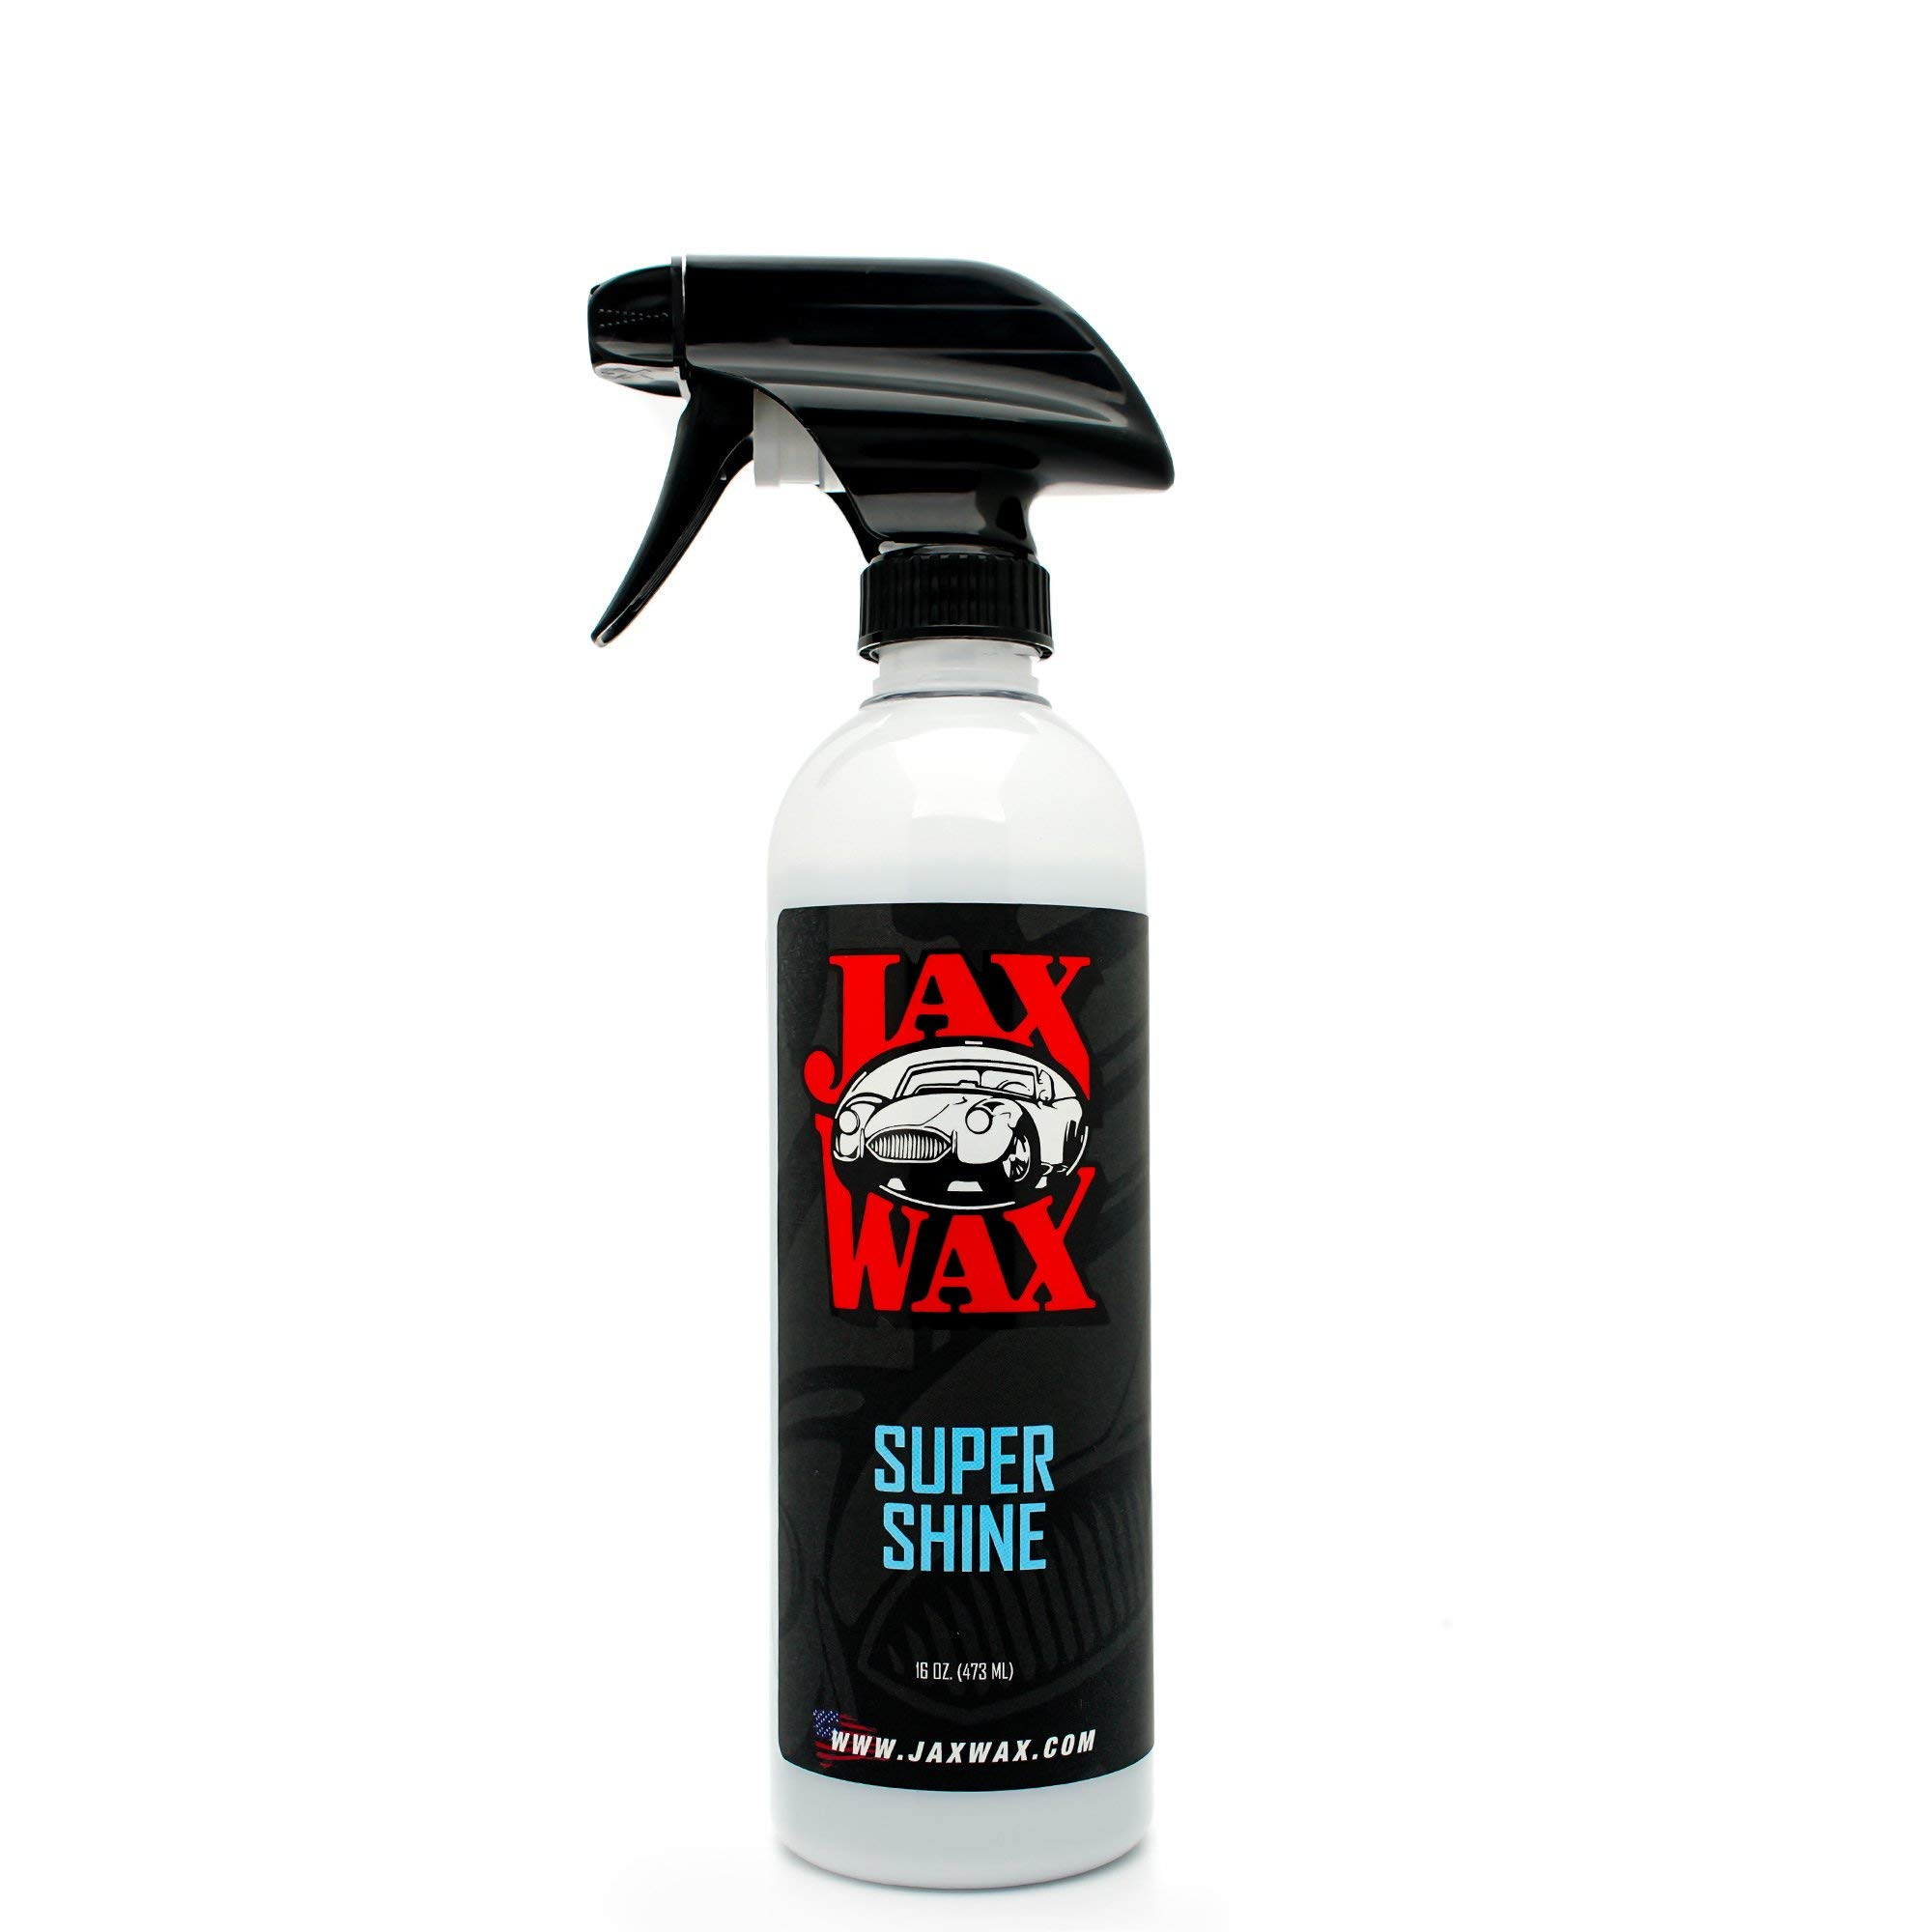 Jax Wax Super Shine Tire Dressing - Wheel Conditioner and Protectant Spray - 16 Ounce